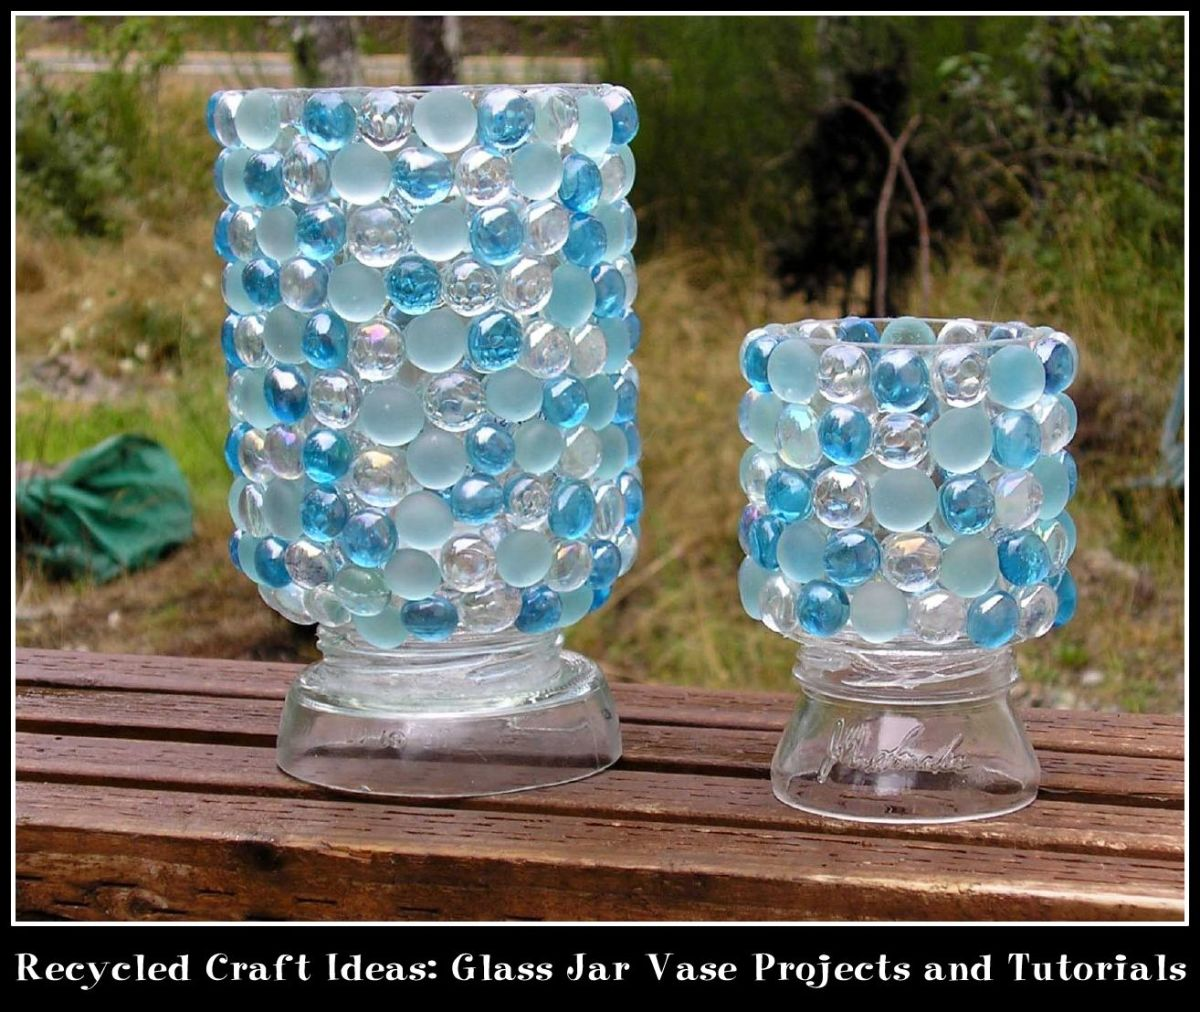 Recycled craft ideas glass jar vase projects and tutorials for Crafts to make with glass jars